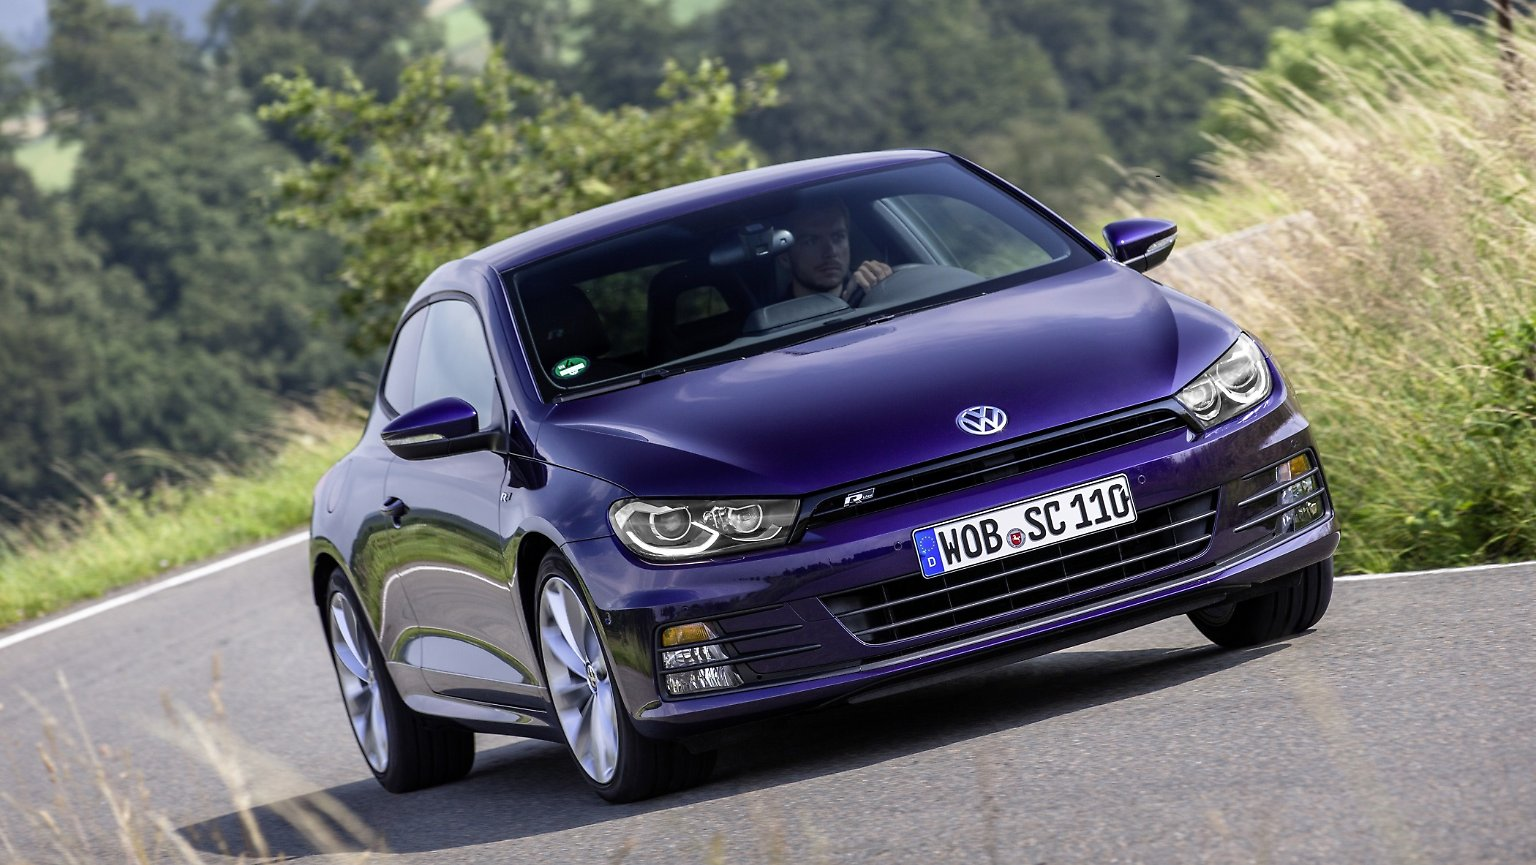 2020 Volkswagen Scirocco Price and Review